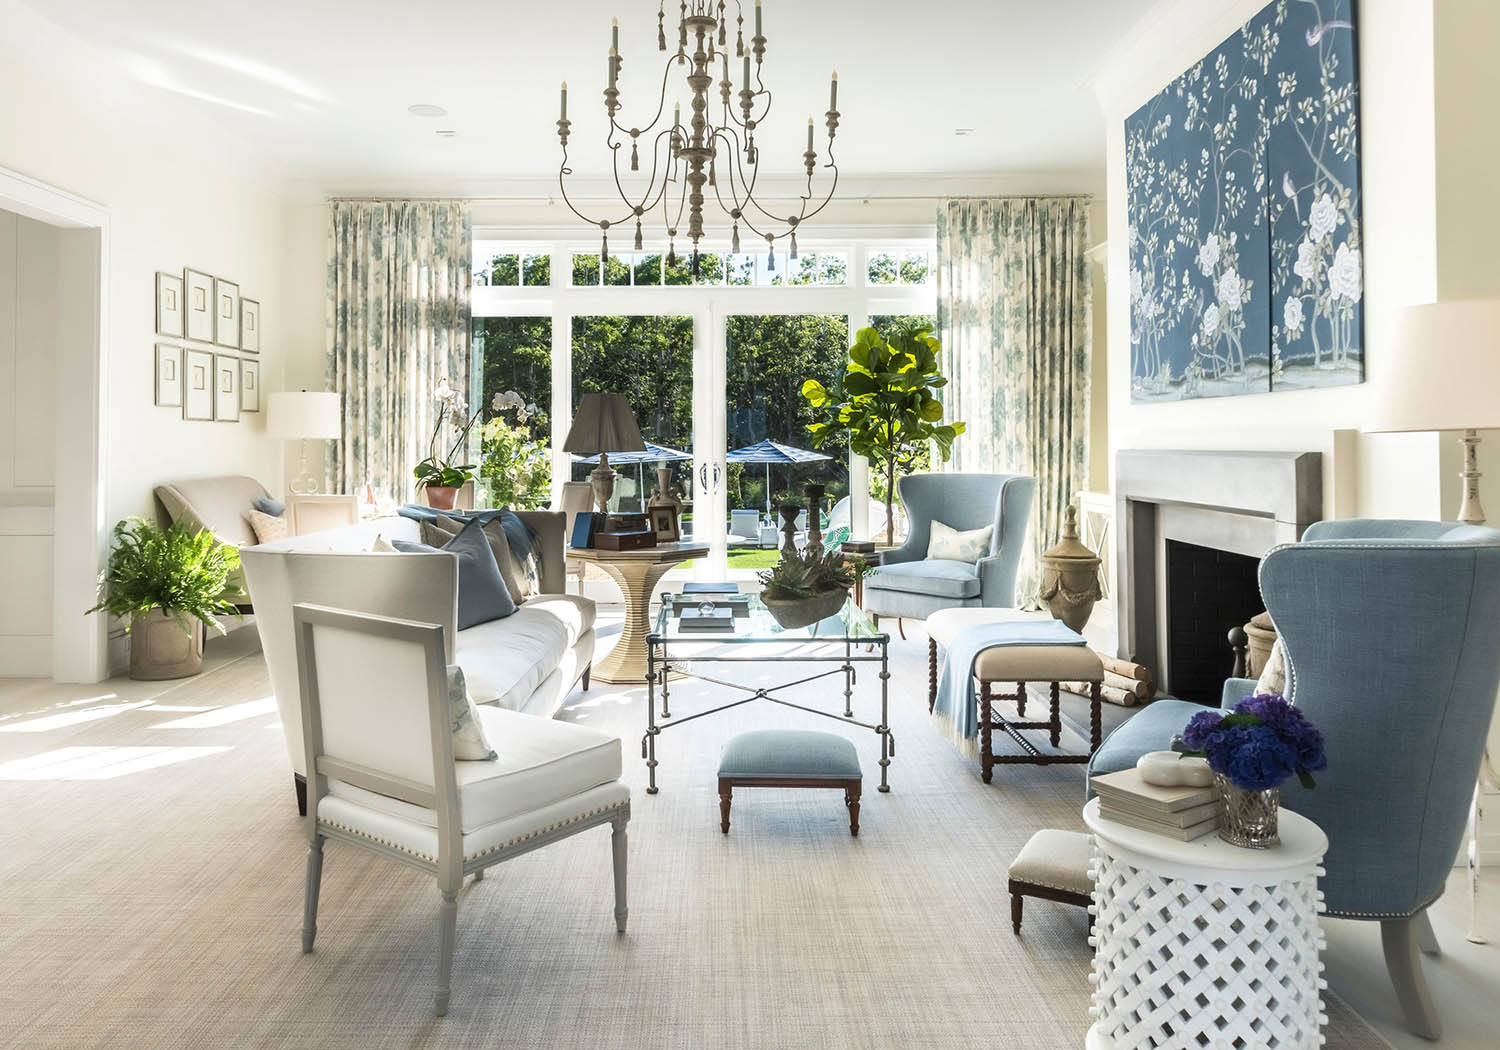 Traditional Interior Design: What Is Traditional Interior Design?